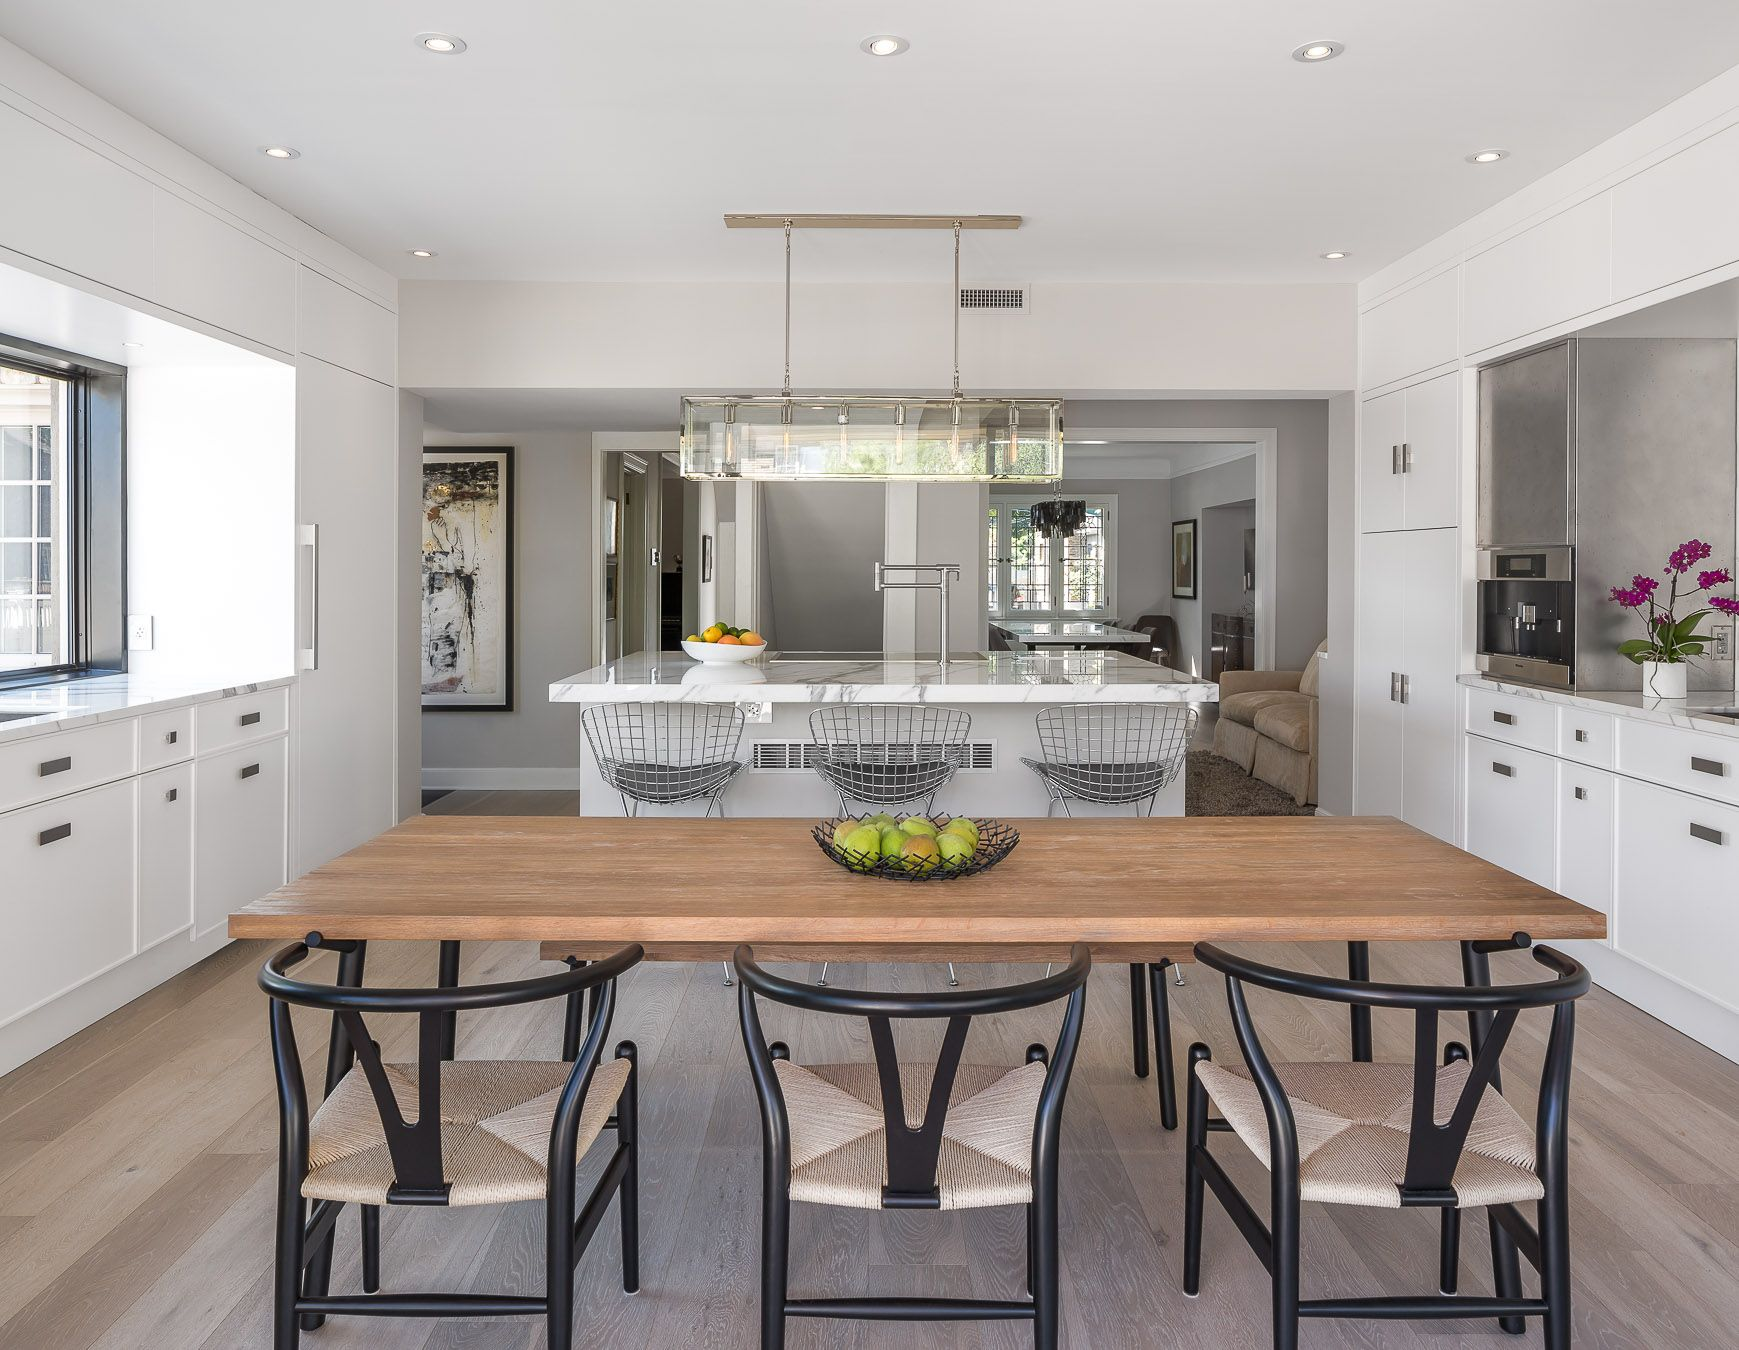 A white-washed & caluctta marble kitchen design in Ottawa, Canada ...